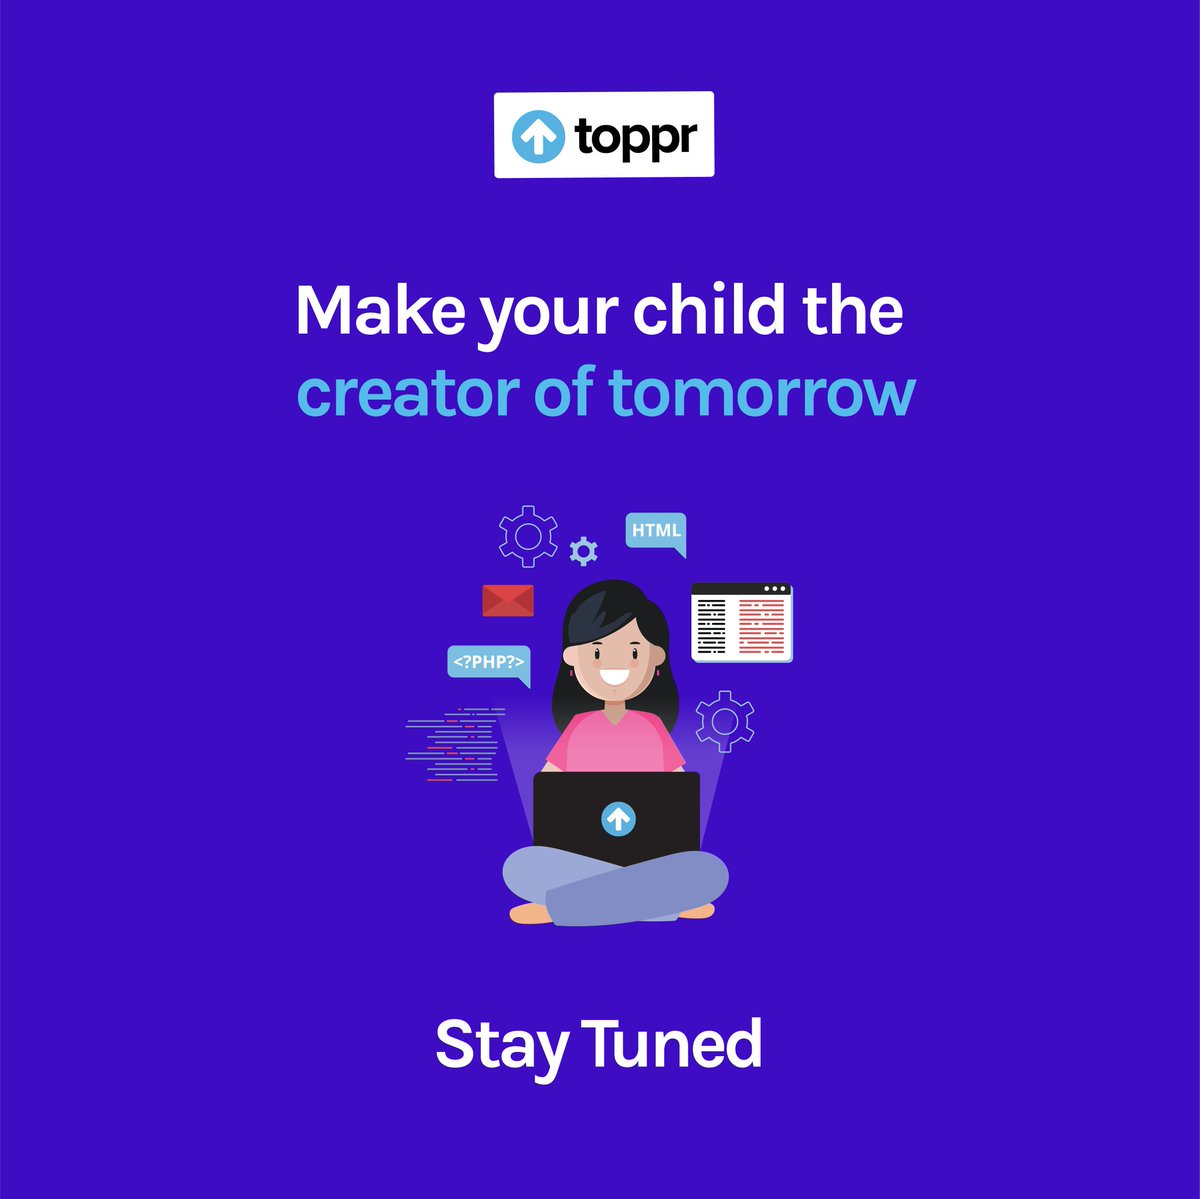 Empower your child with the 21st century skills. Stay tuned. #StayTuned https://t.co/62TX4hFJJO